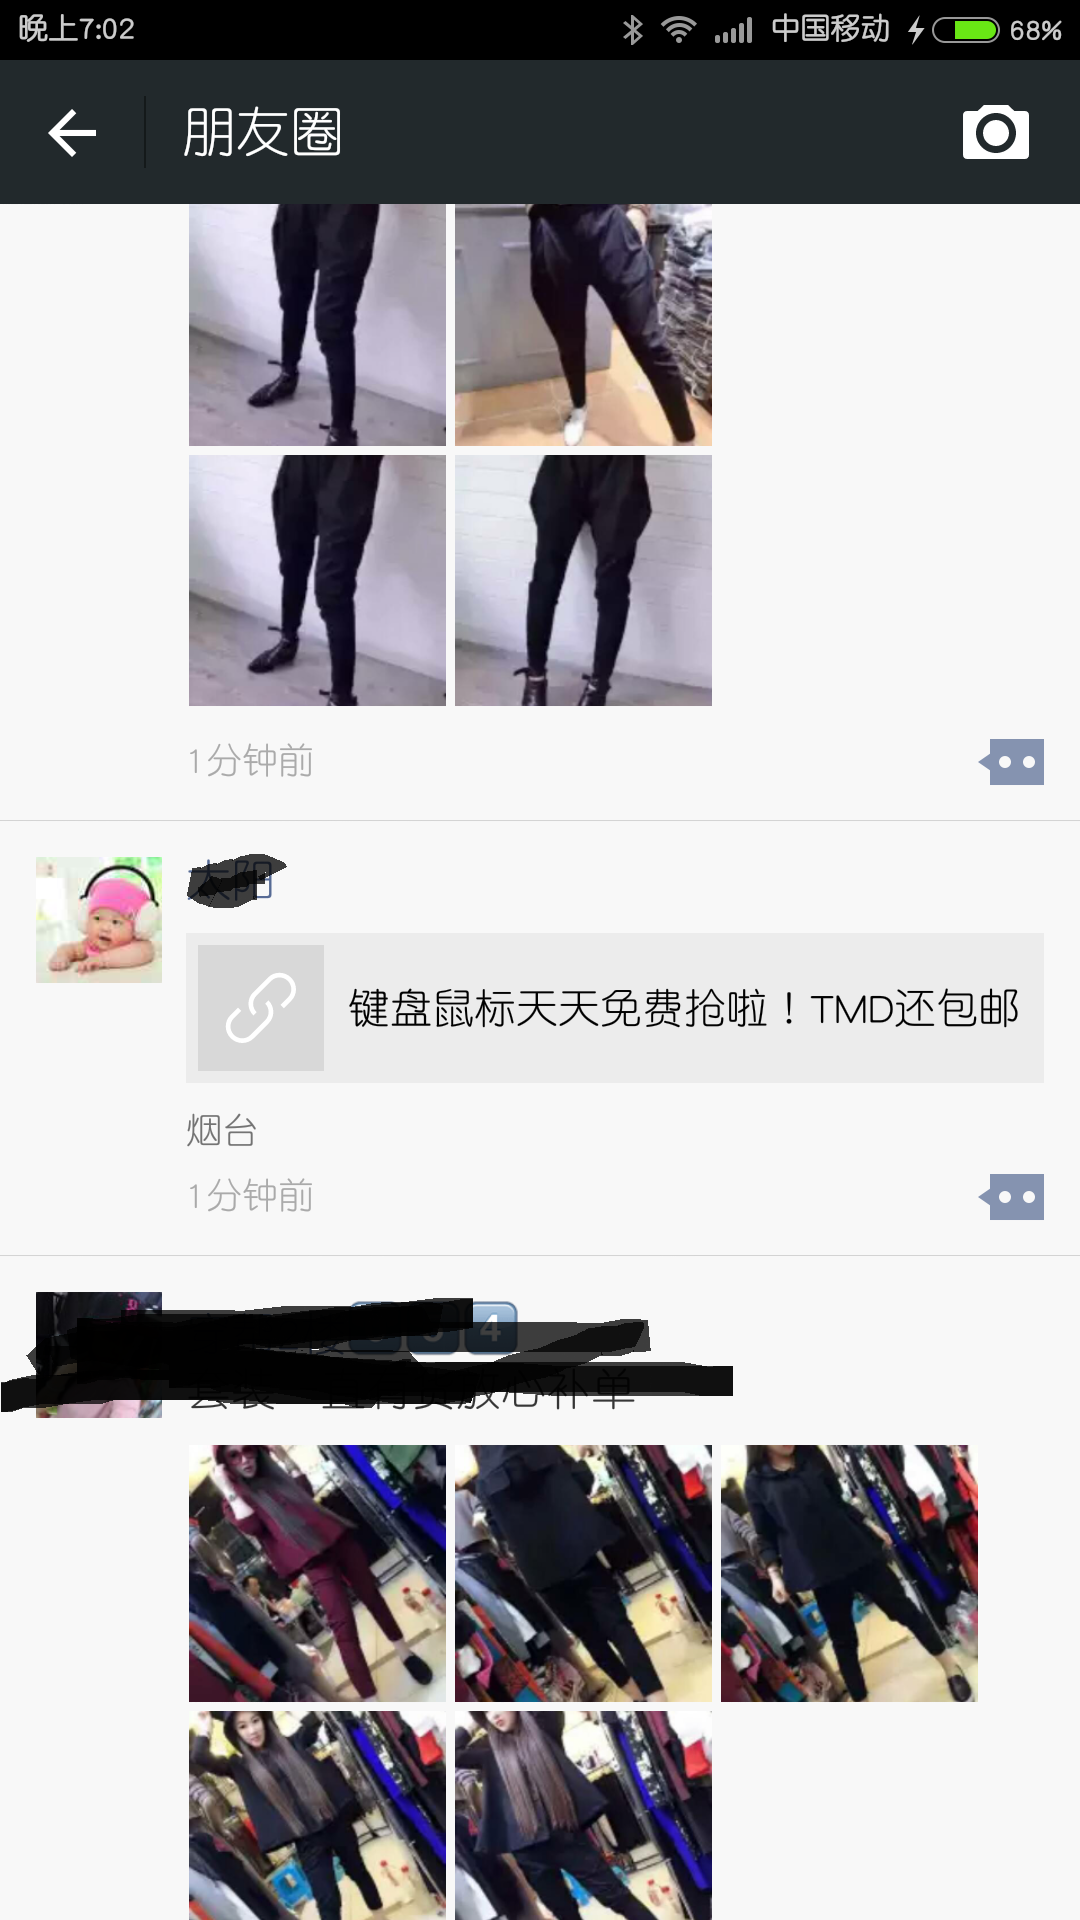 Screenshot_com.tencent.mm_2015-09-25-19-02-1921111111111111.png